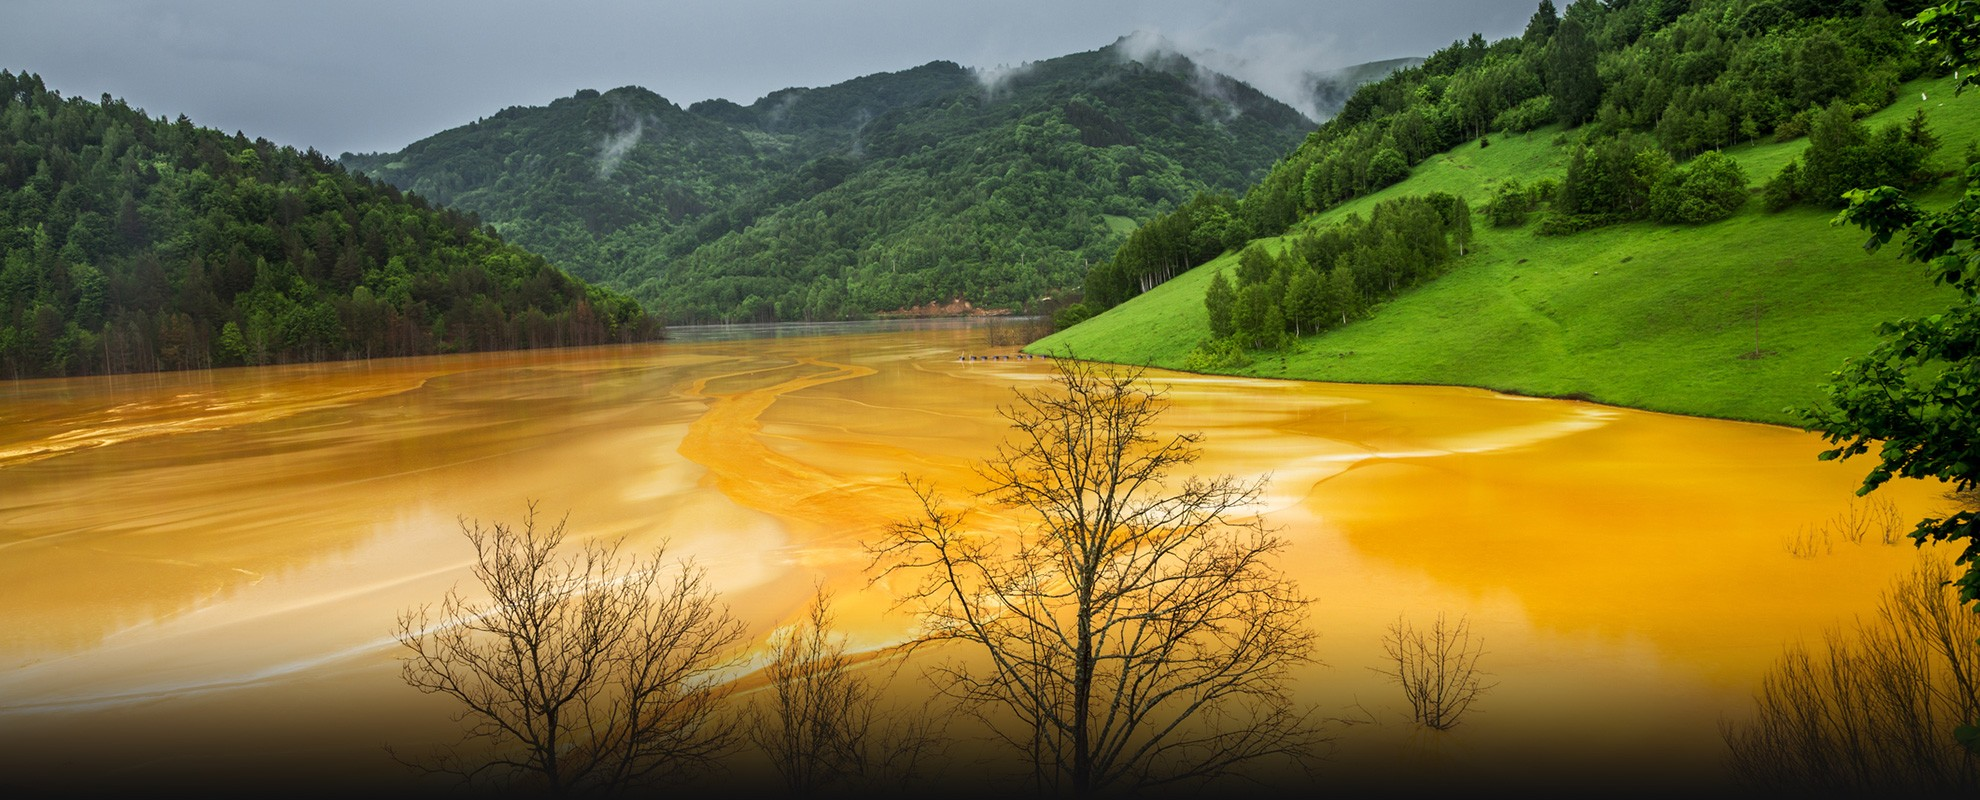 Water pollution from copper mining.